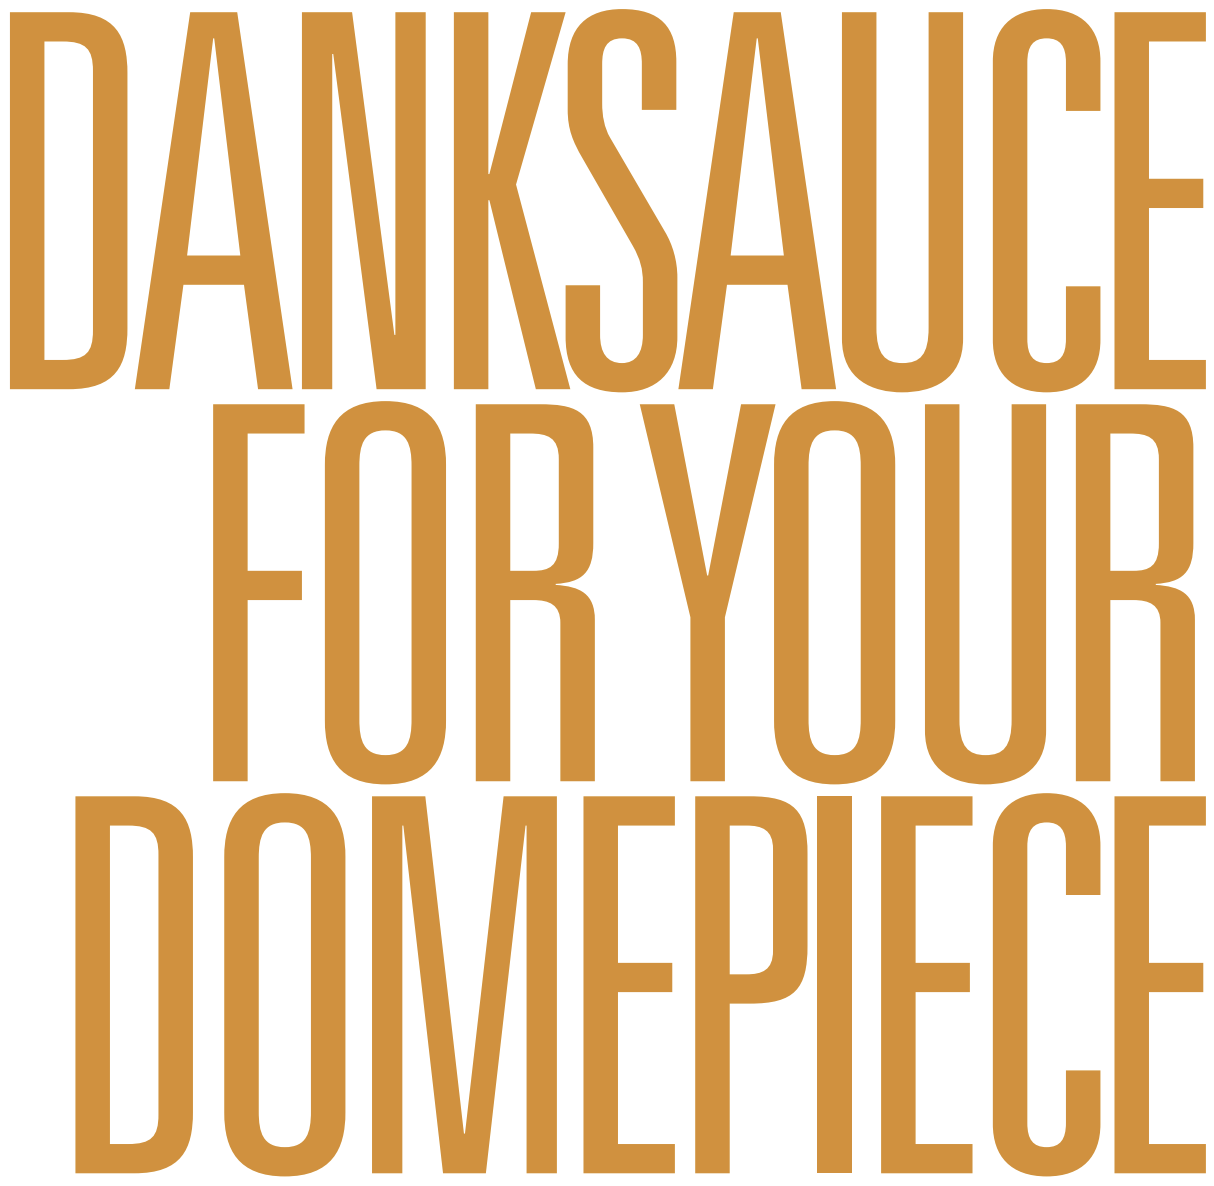 Danksauce for your domepiece